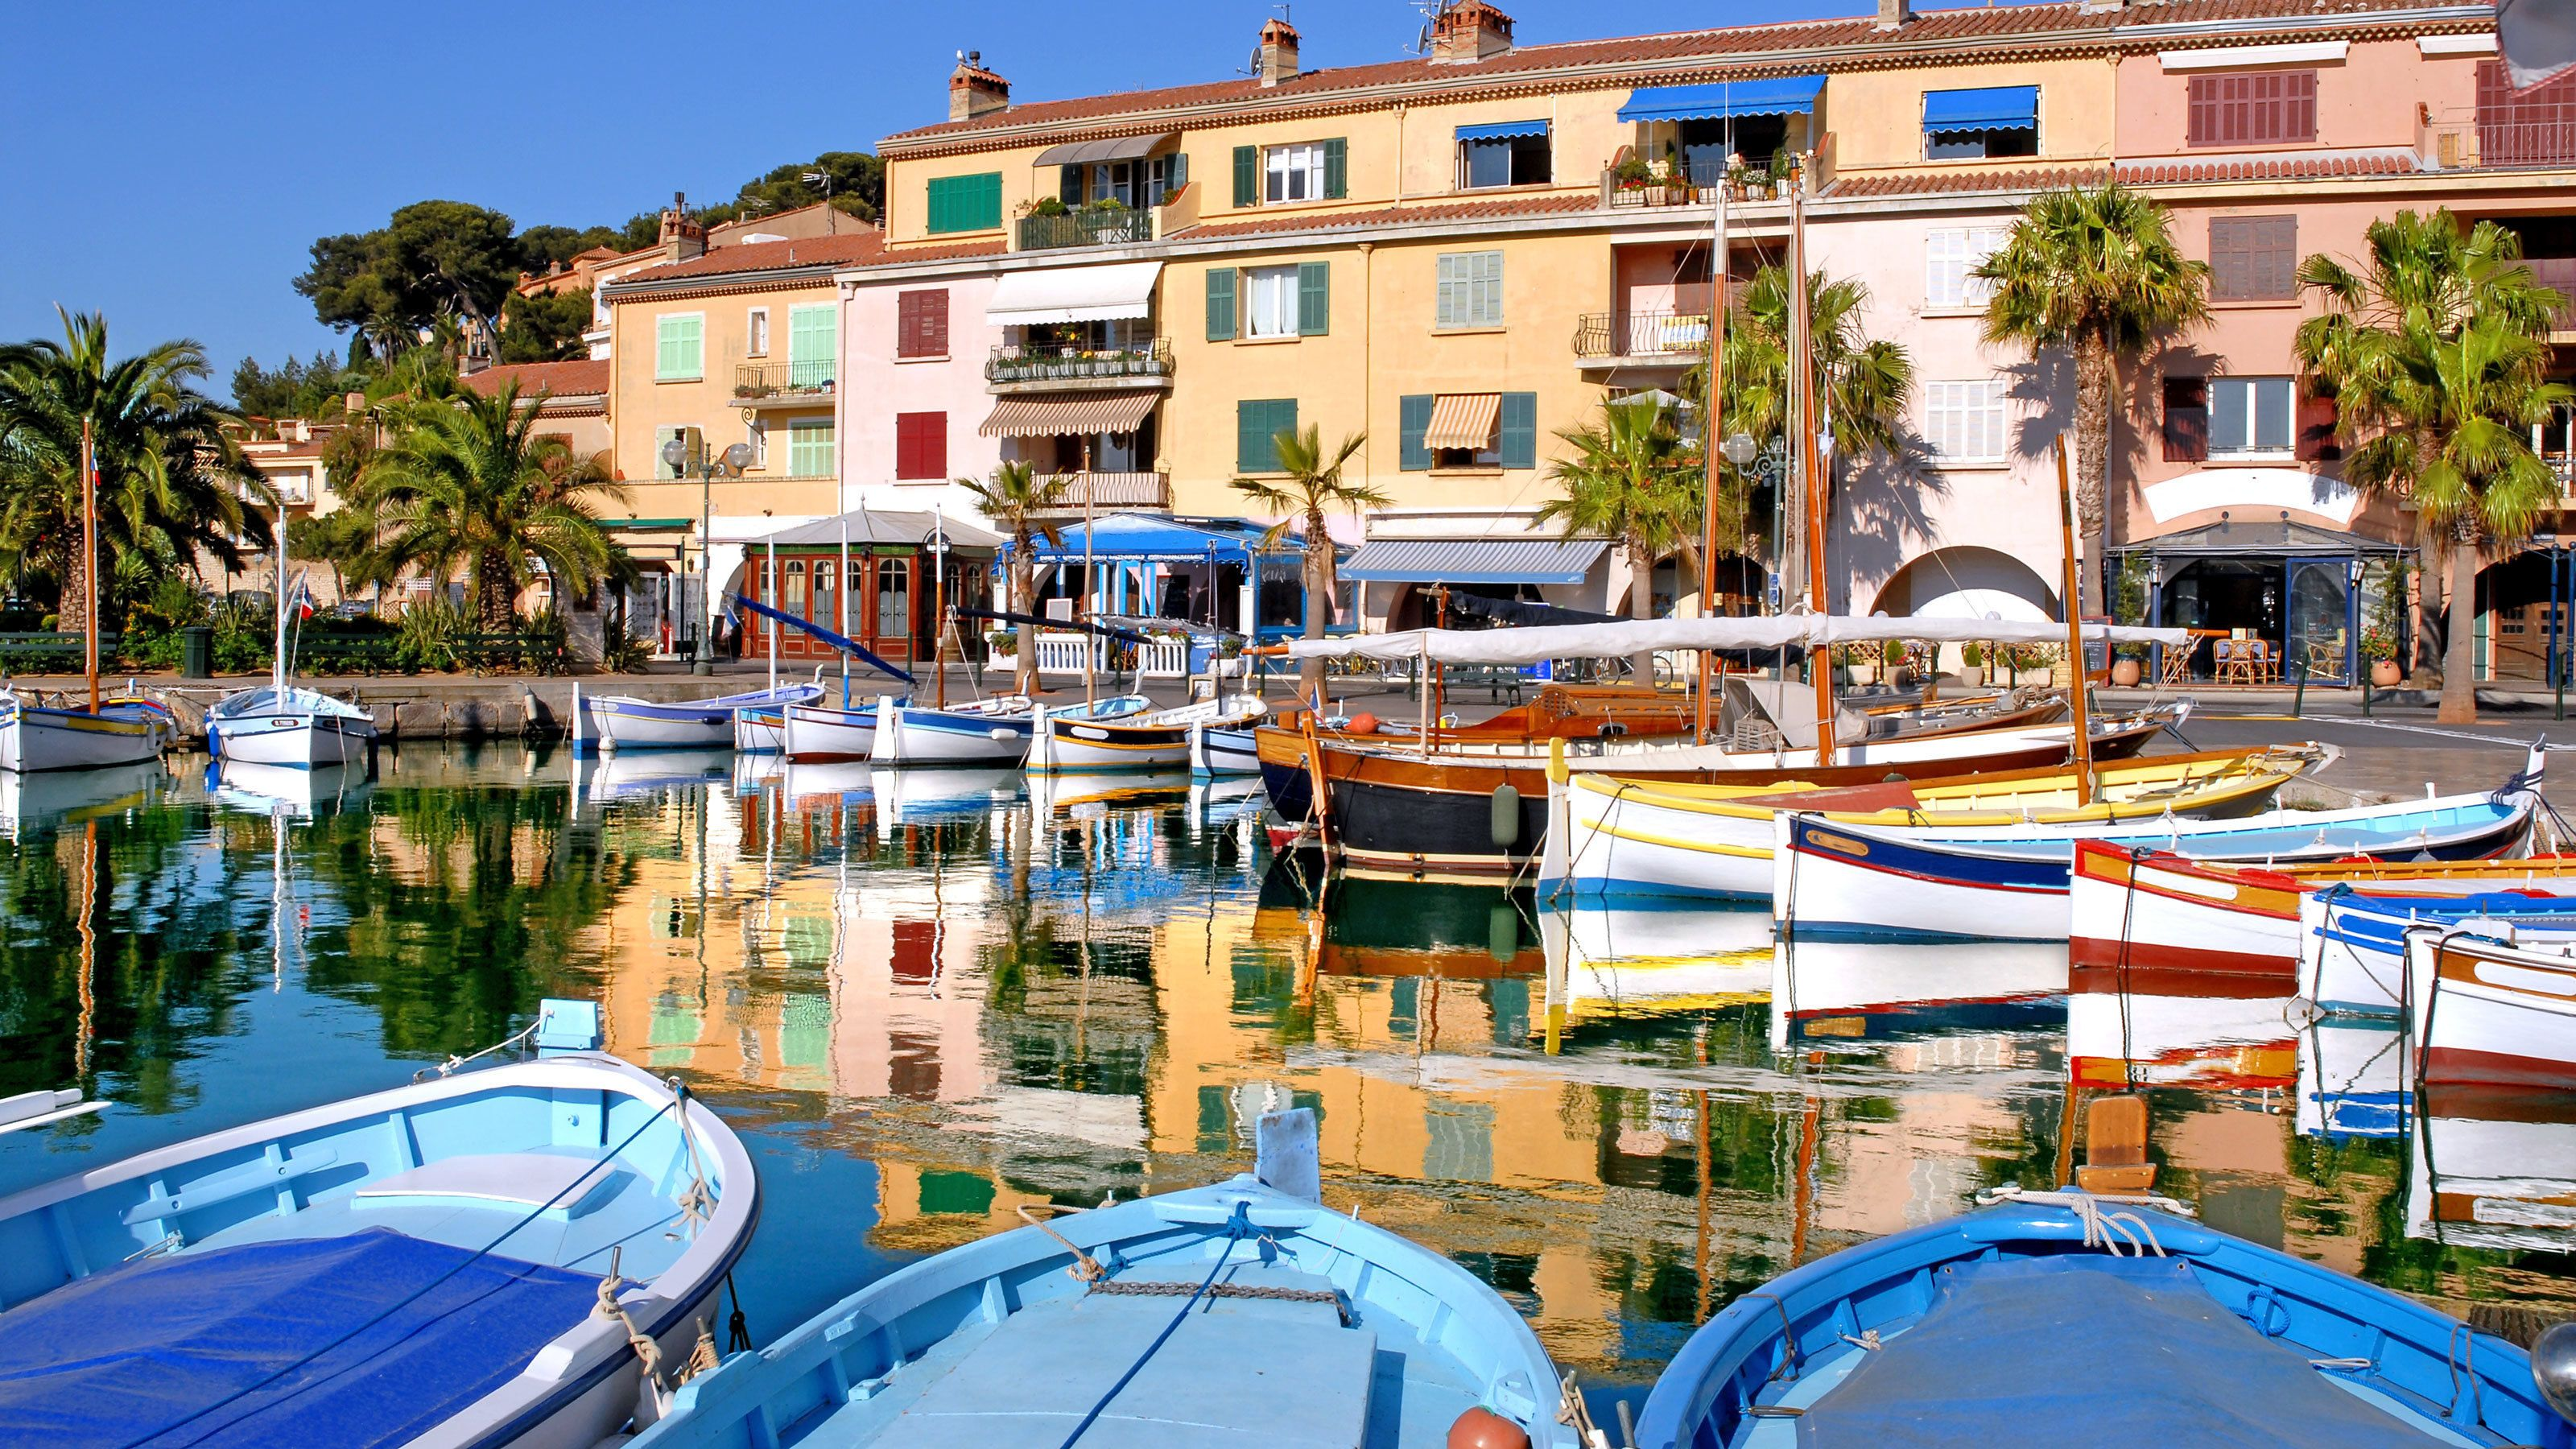 Half-Day Tour of Cassis